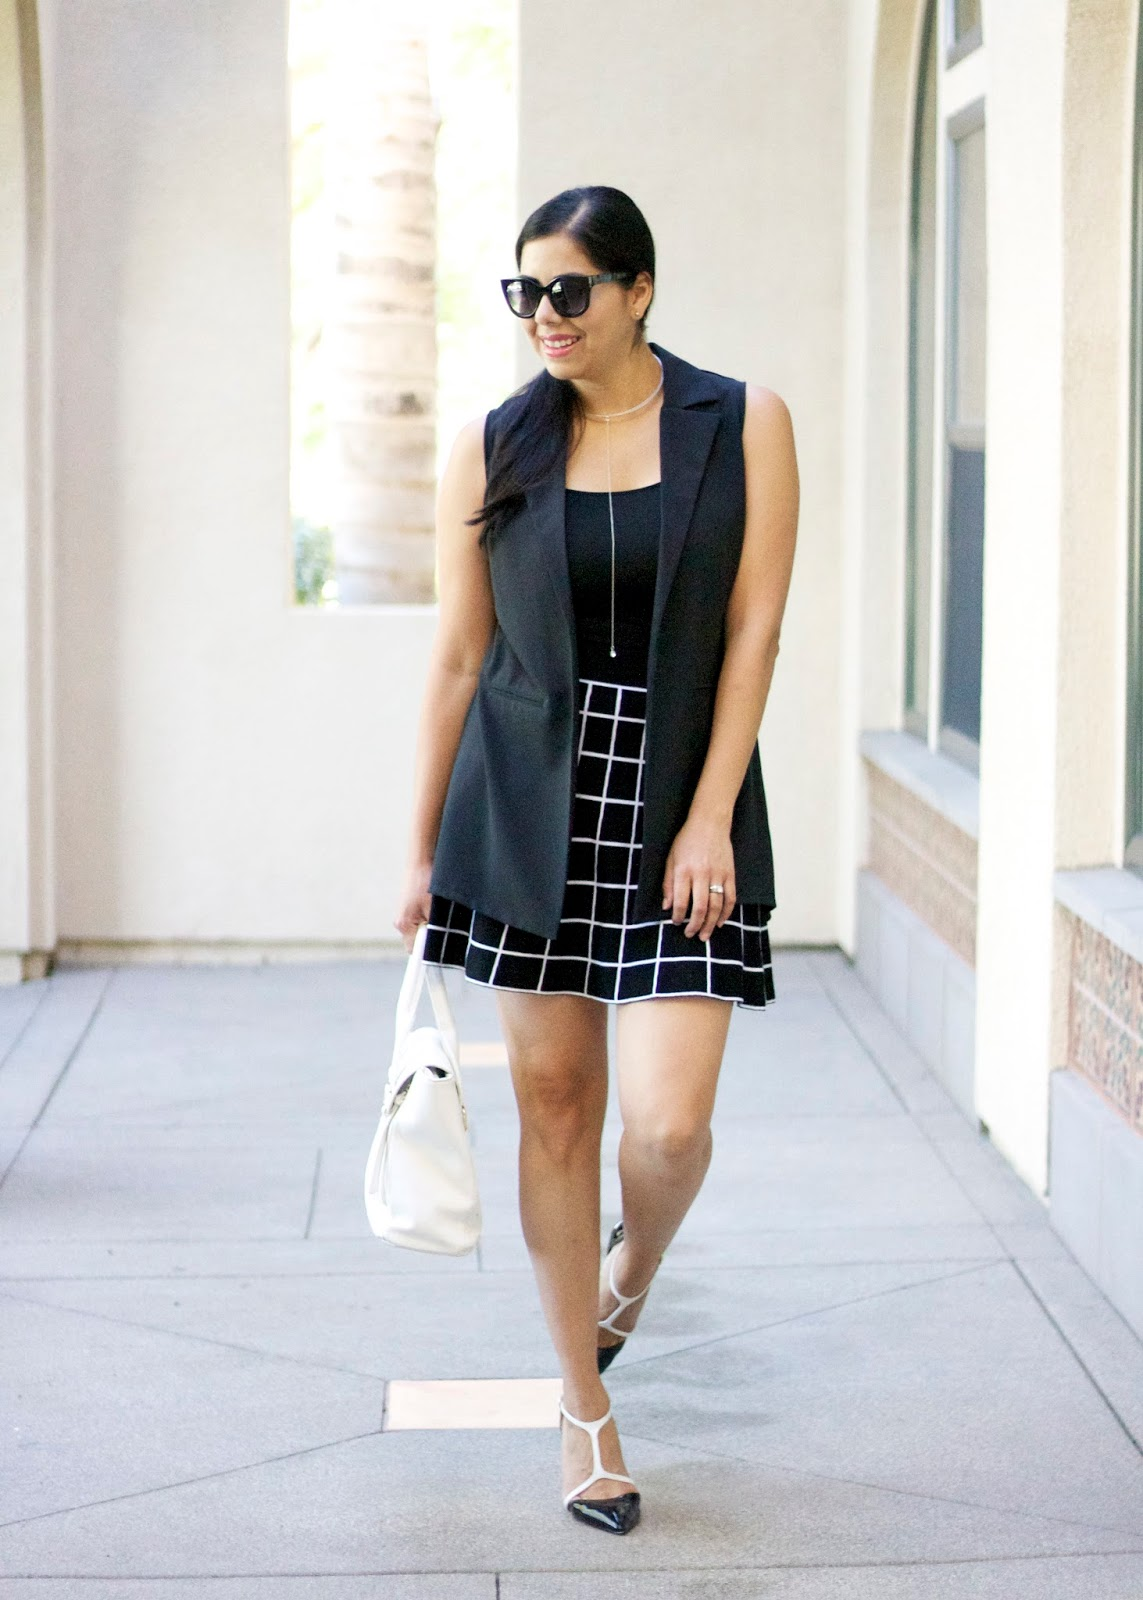 shoedazzle heels, shoedazzle blogger, black and white shoes, windowpane skirt, how to wear windowpane